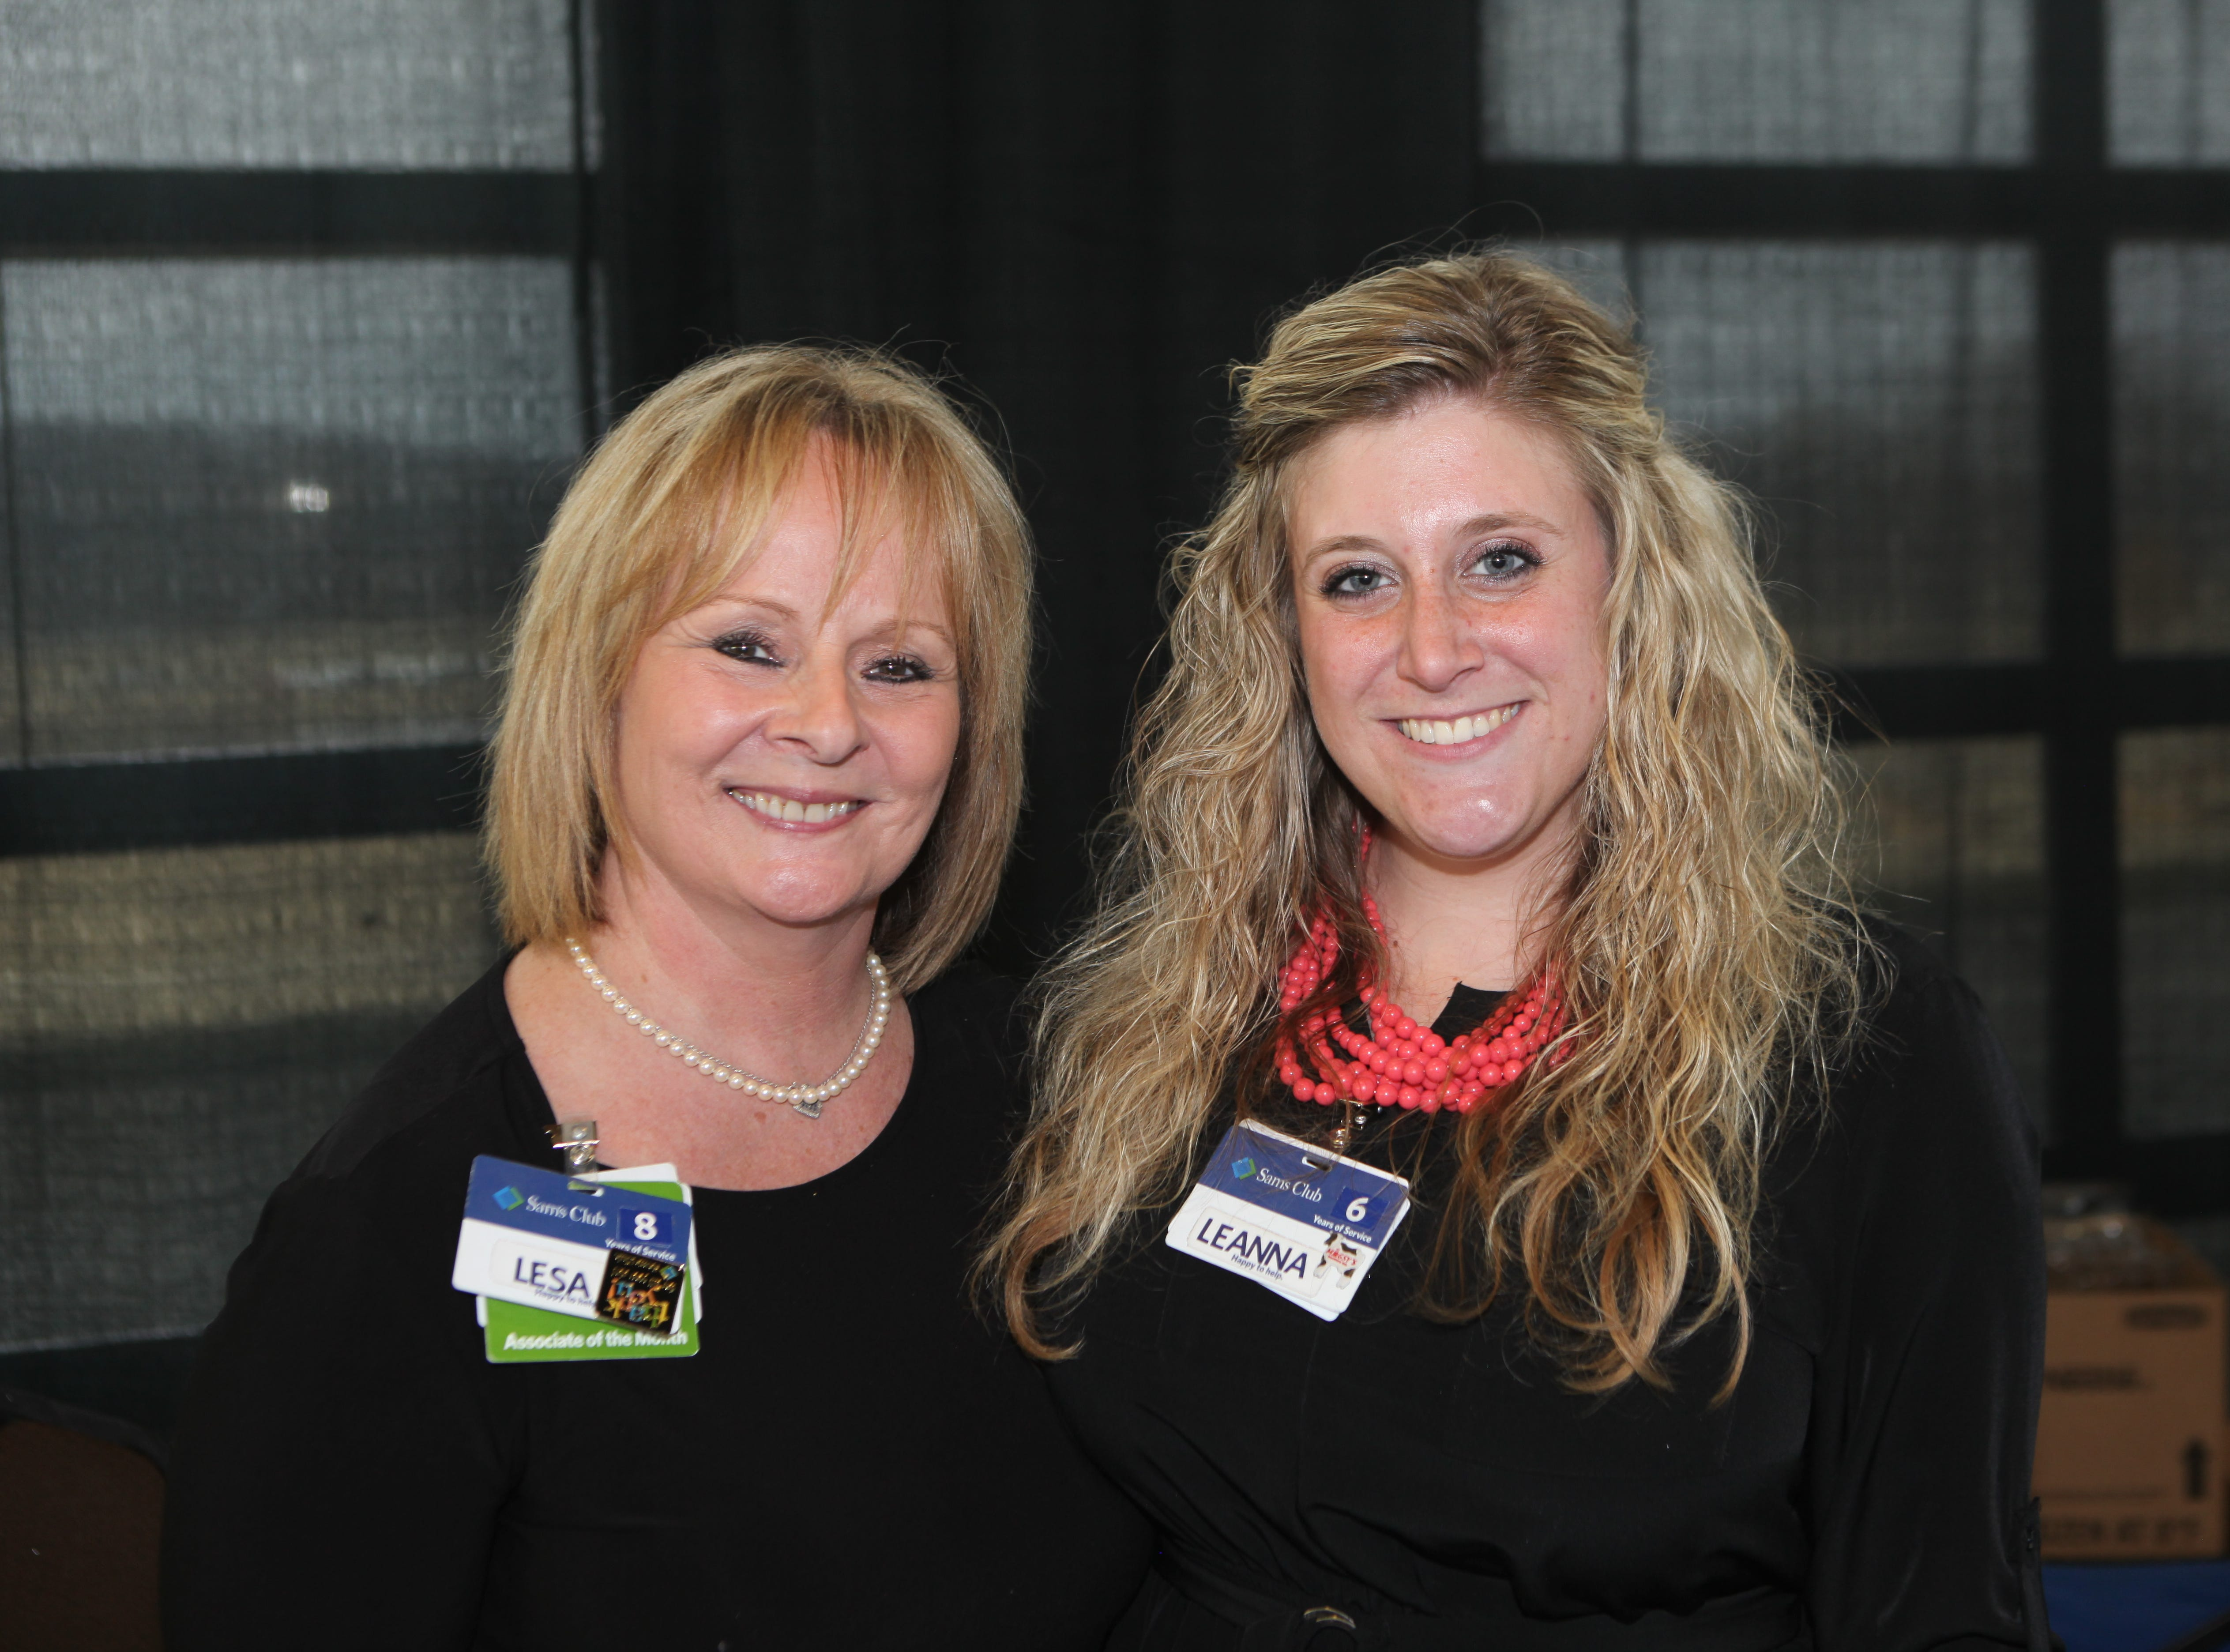 Lesa Rogowitz and Leanna Duckworth representing Sam's Club smile during the 7th Annual Chocolate Affair at Wilma Rudolph Event Center Saturday, February 2, 2019 . The sold-out event saw hundreds of guests enjoying chocolate creations from more than a dozen local and national vendors.